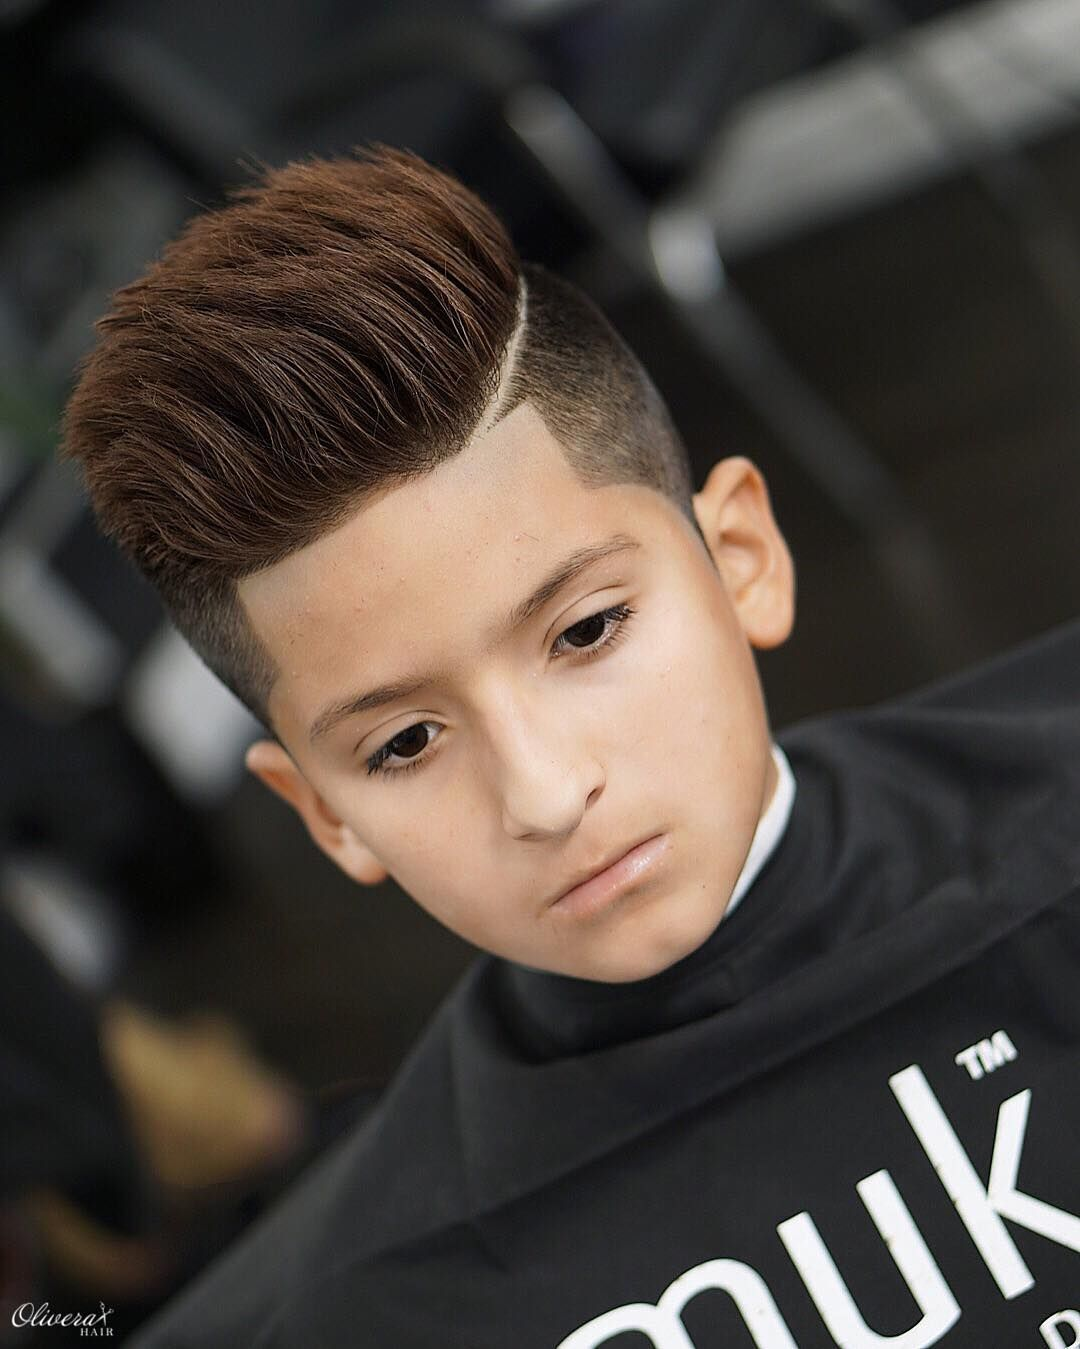 22 New Boys Haircuts for 2019 | Boys Haircuts | Boy hairstyles, New ...